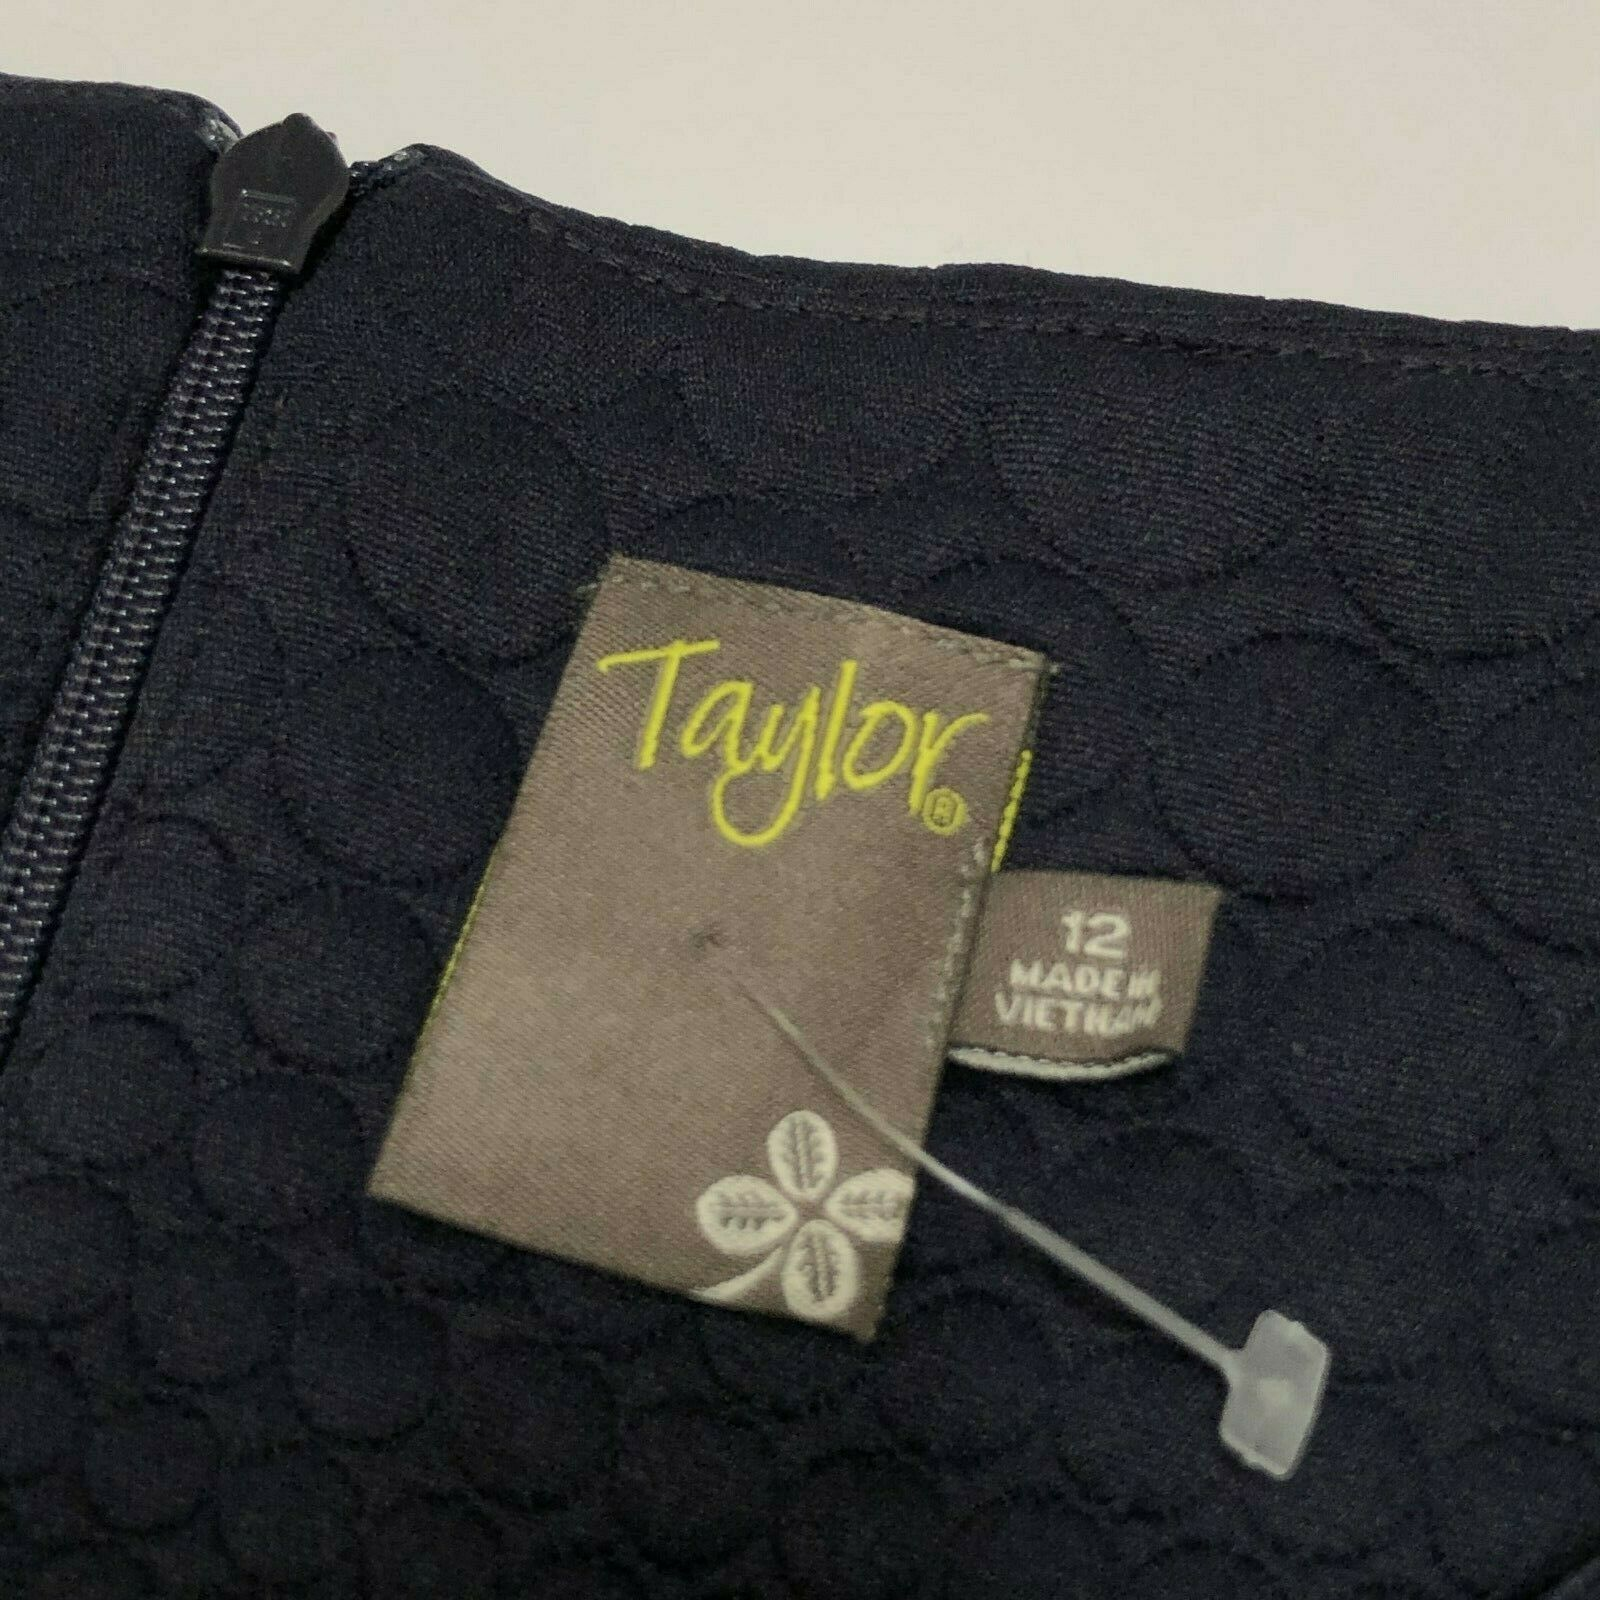 Taylor Navy Blue Jacquard Fit and Flare Dress Sleeveless Womens Size 12 NEW